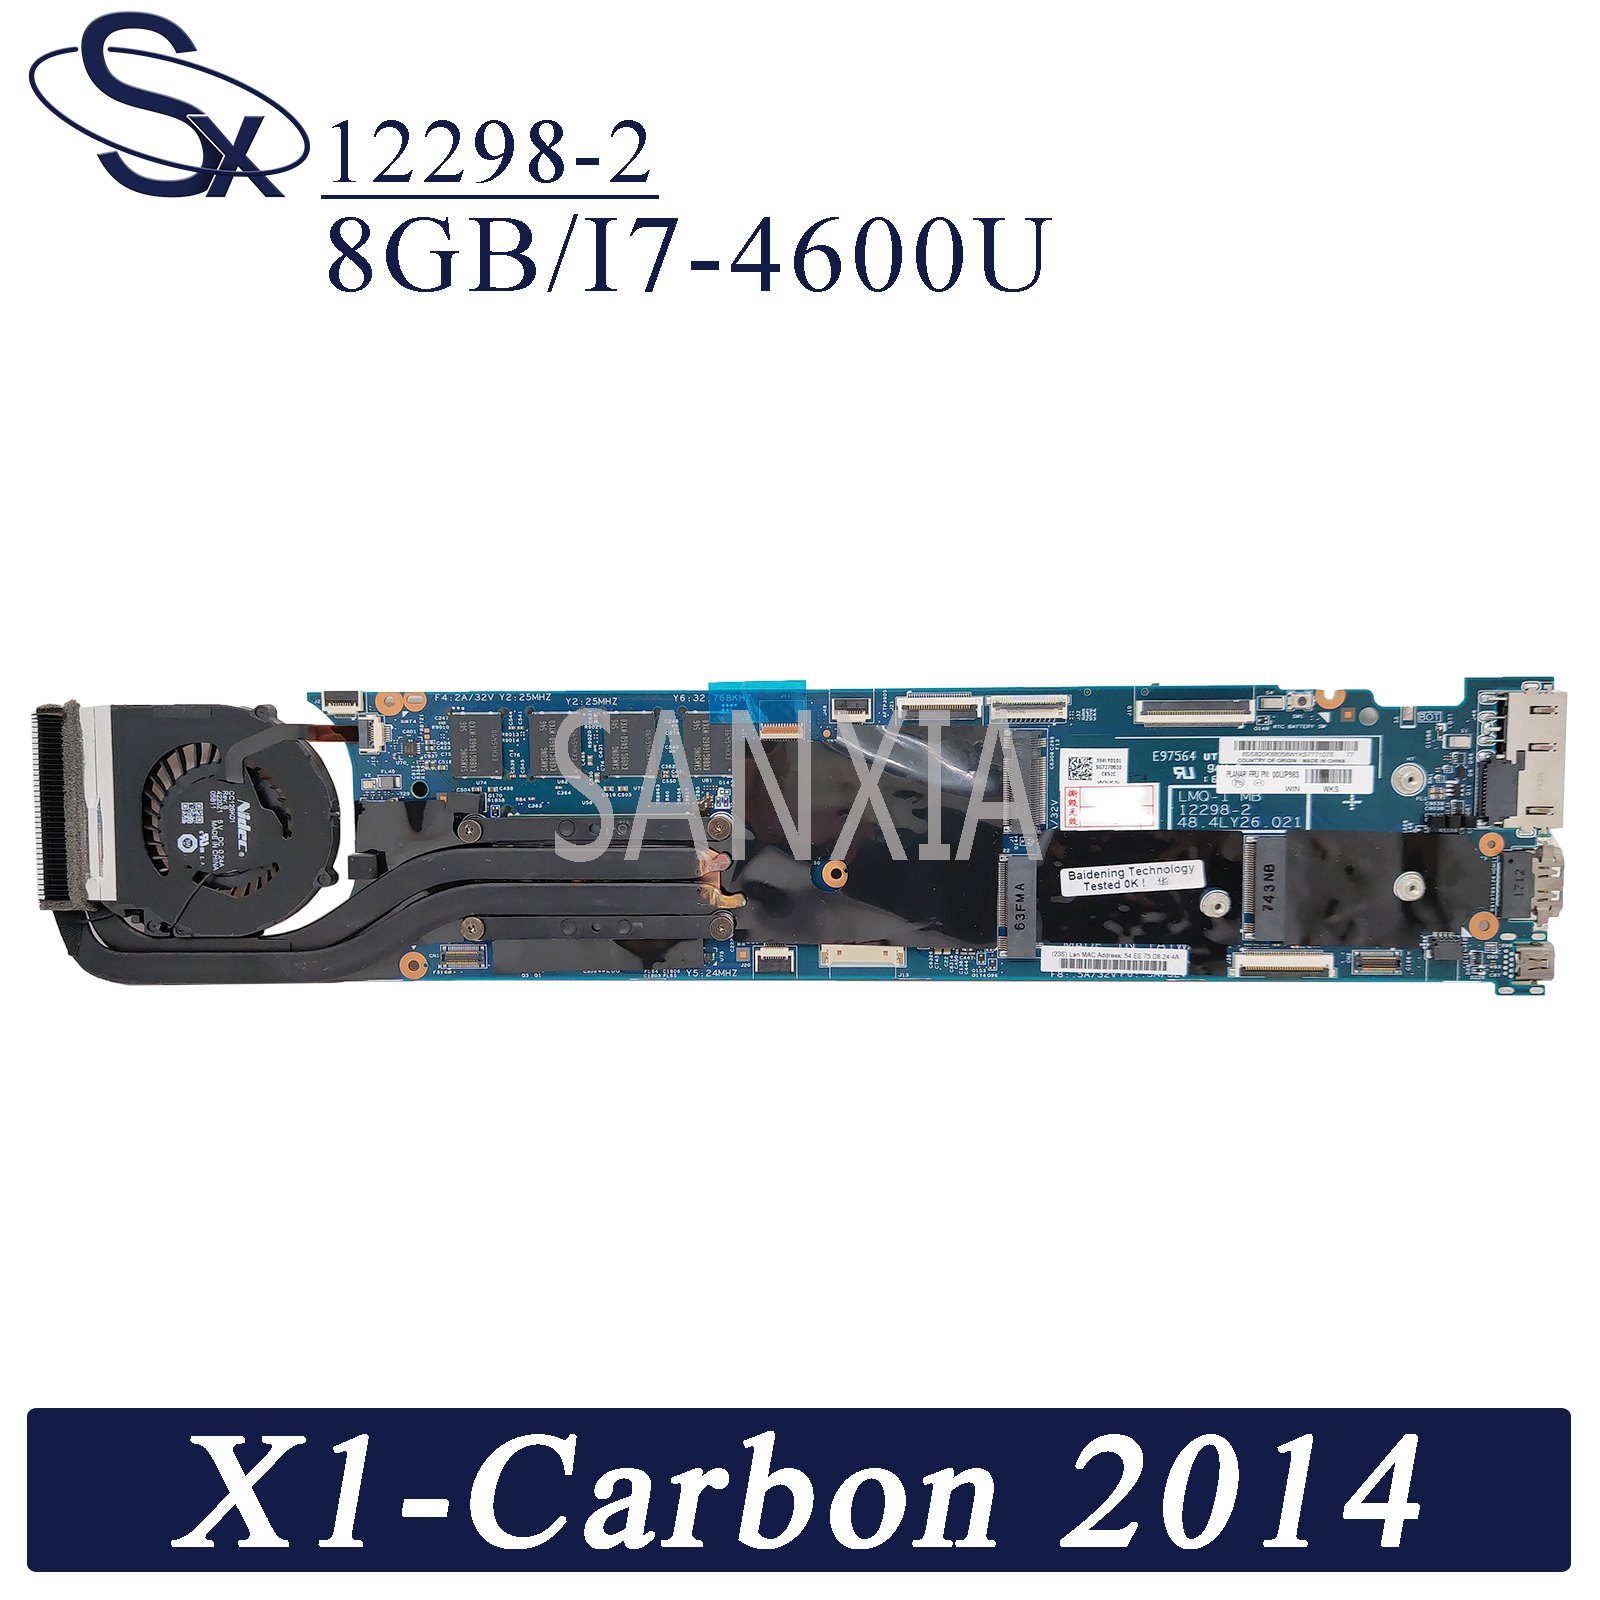 KEFU 12298-2 Laptop motherboard for Lenovo Thinkpad X1-Carbon 2014 original mainboard 8GB-RAM <font><b>I7</b></font>-<font><b>4600U</b></font> image